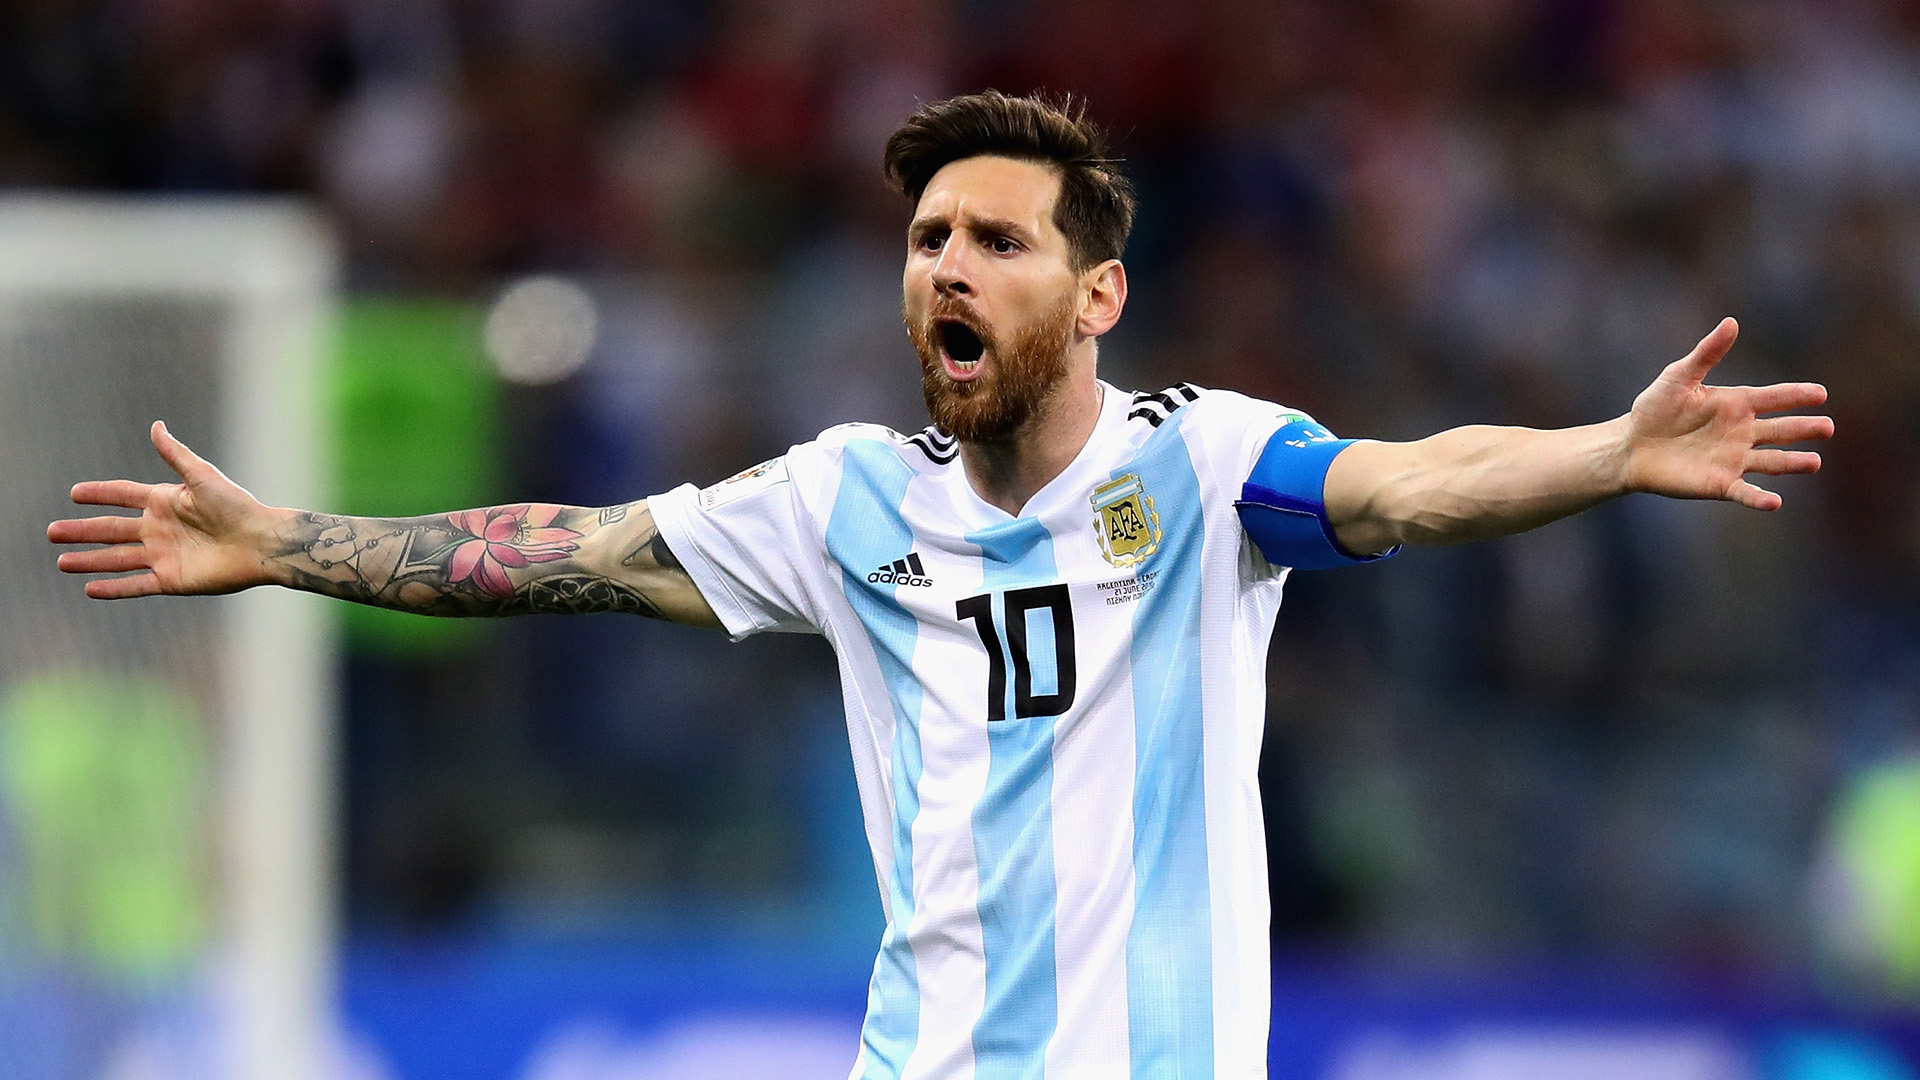 b2ac5a9c Lionel Messi news: The miserable Argentina No.10 stat that sums up ...